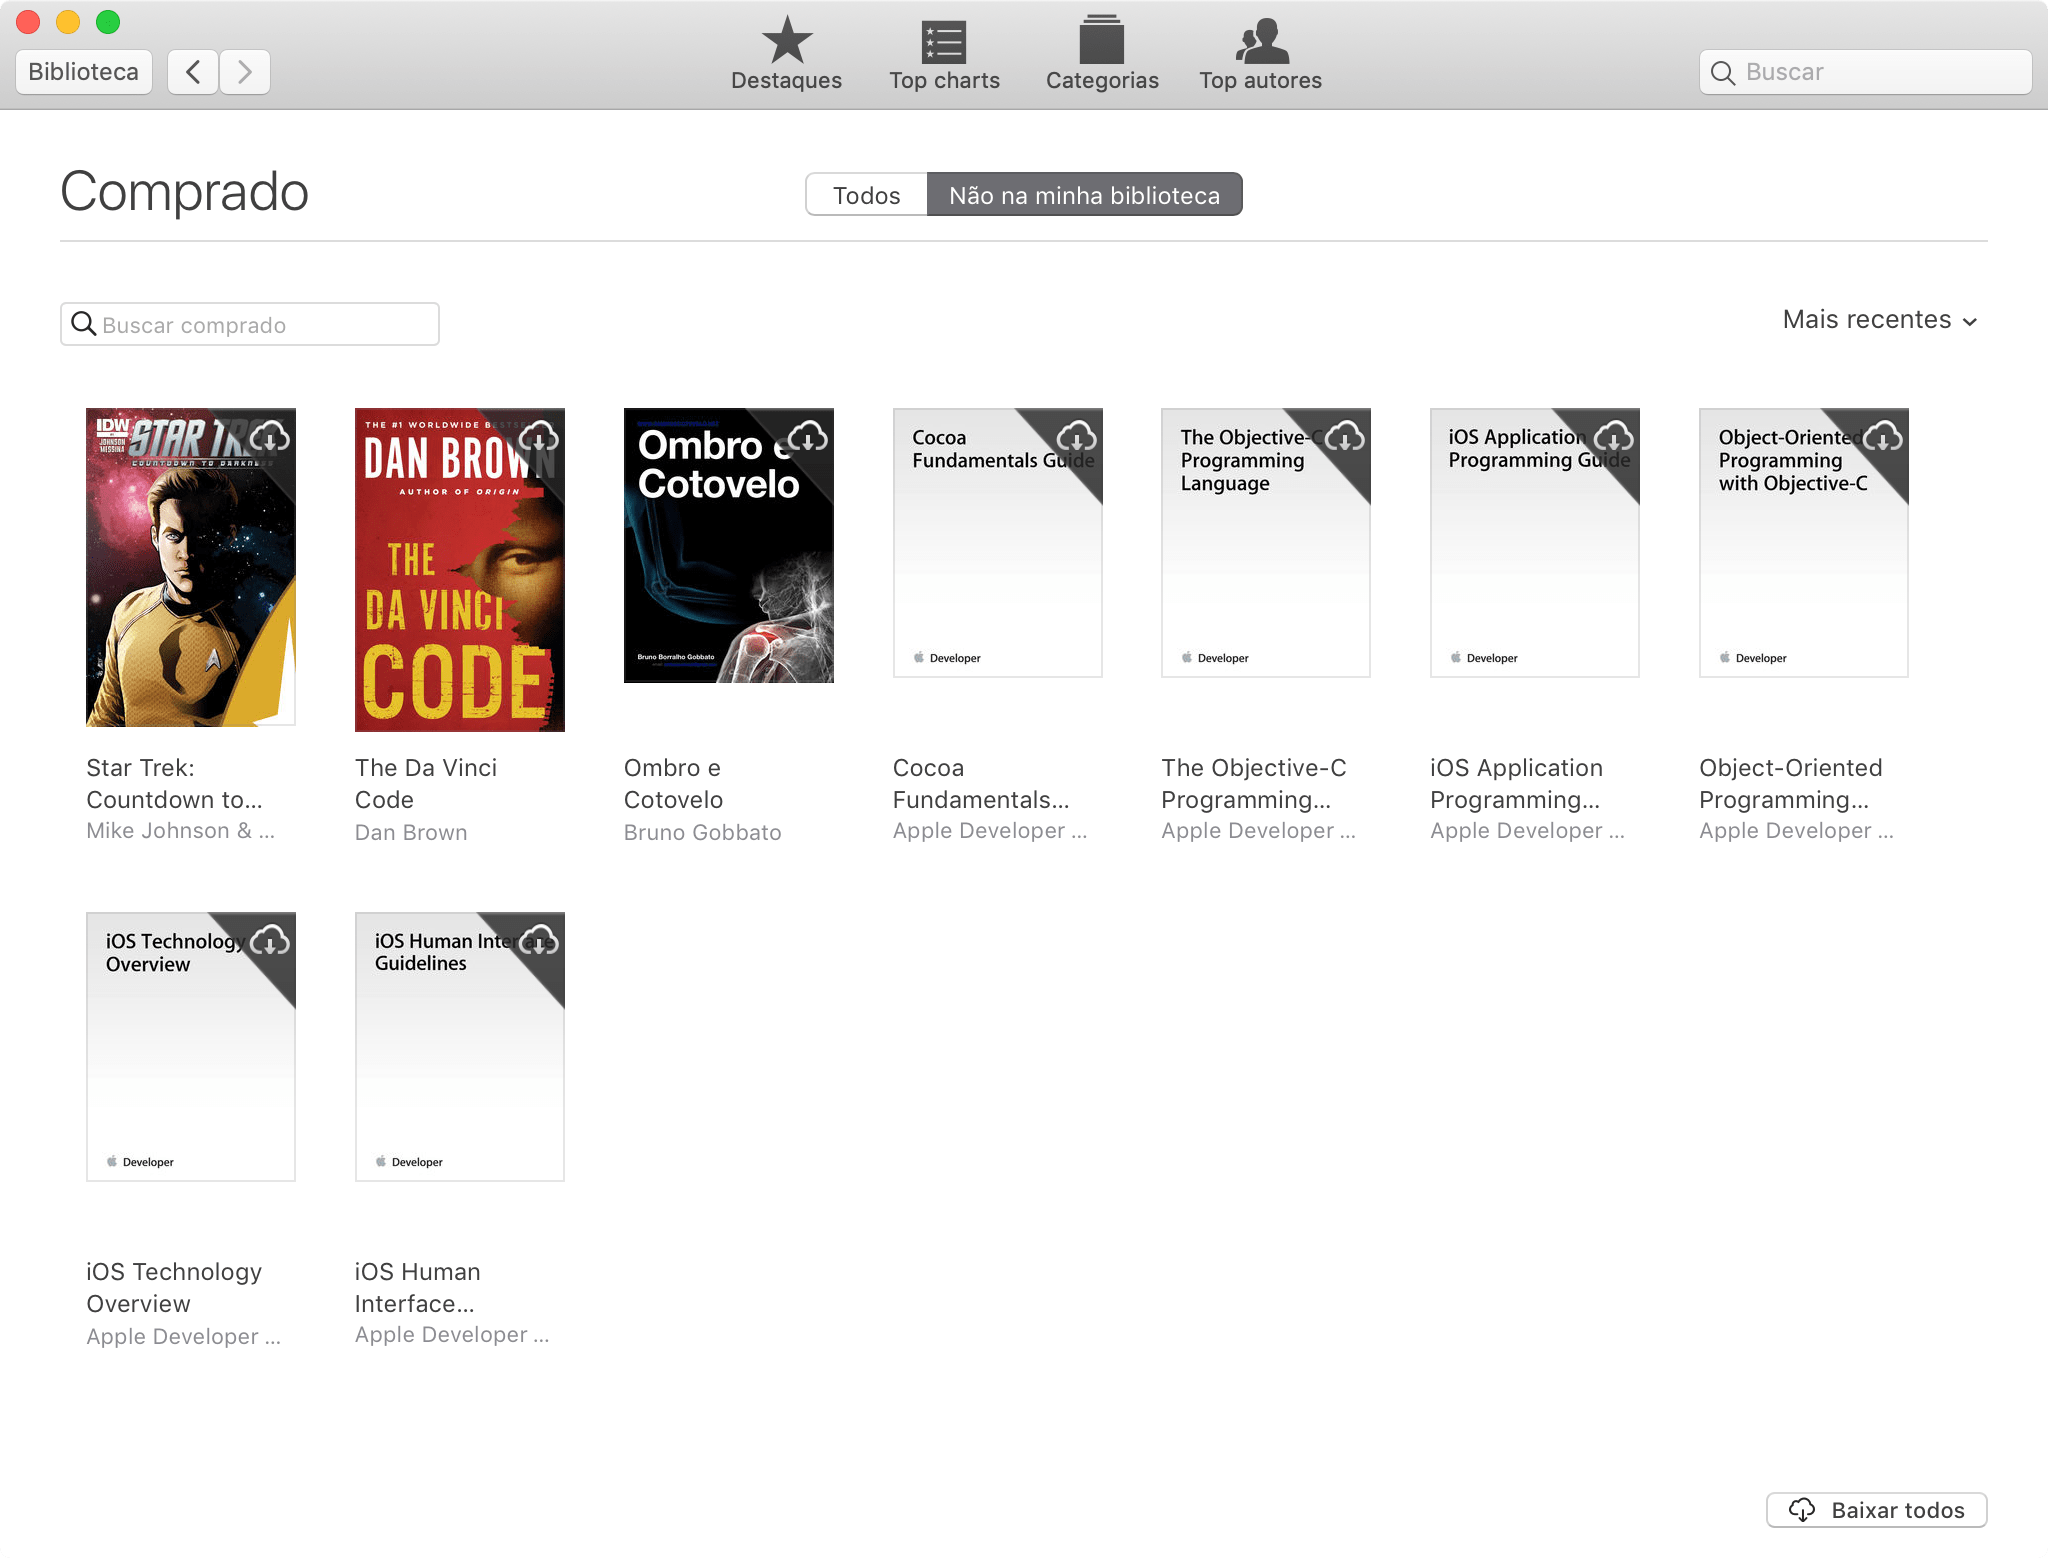 Downloading a book purchased from iBooks Store